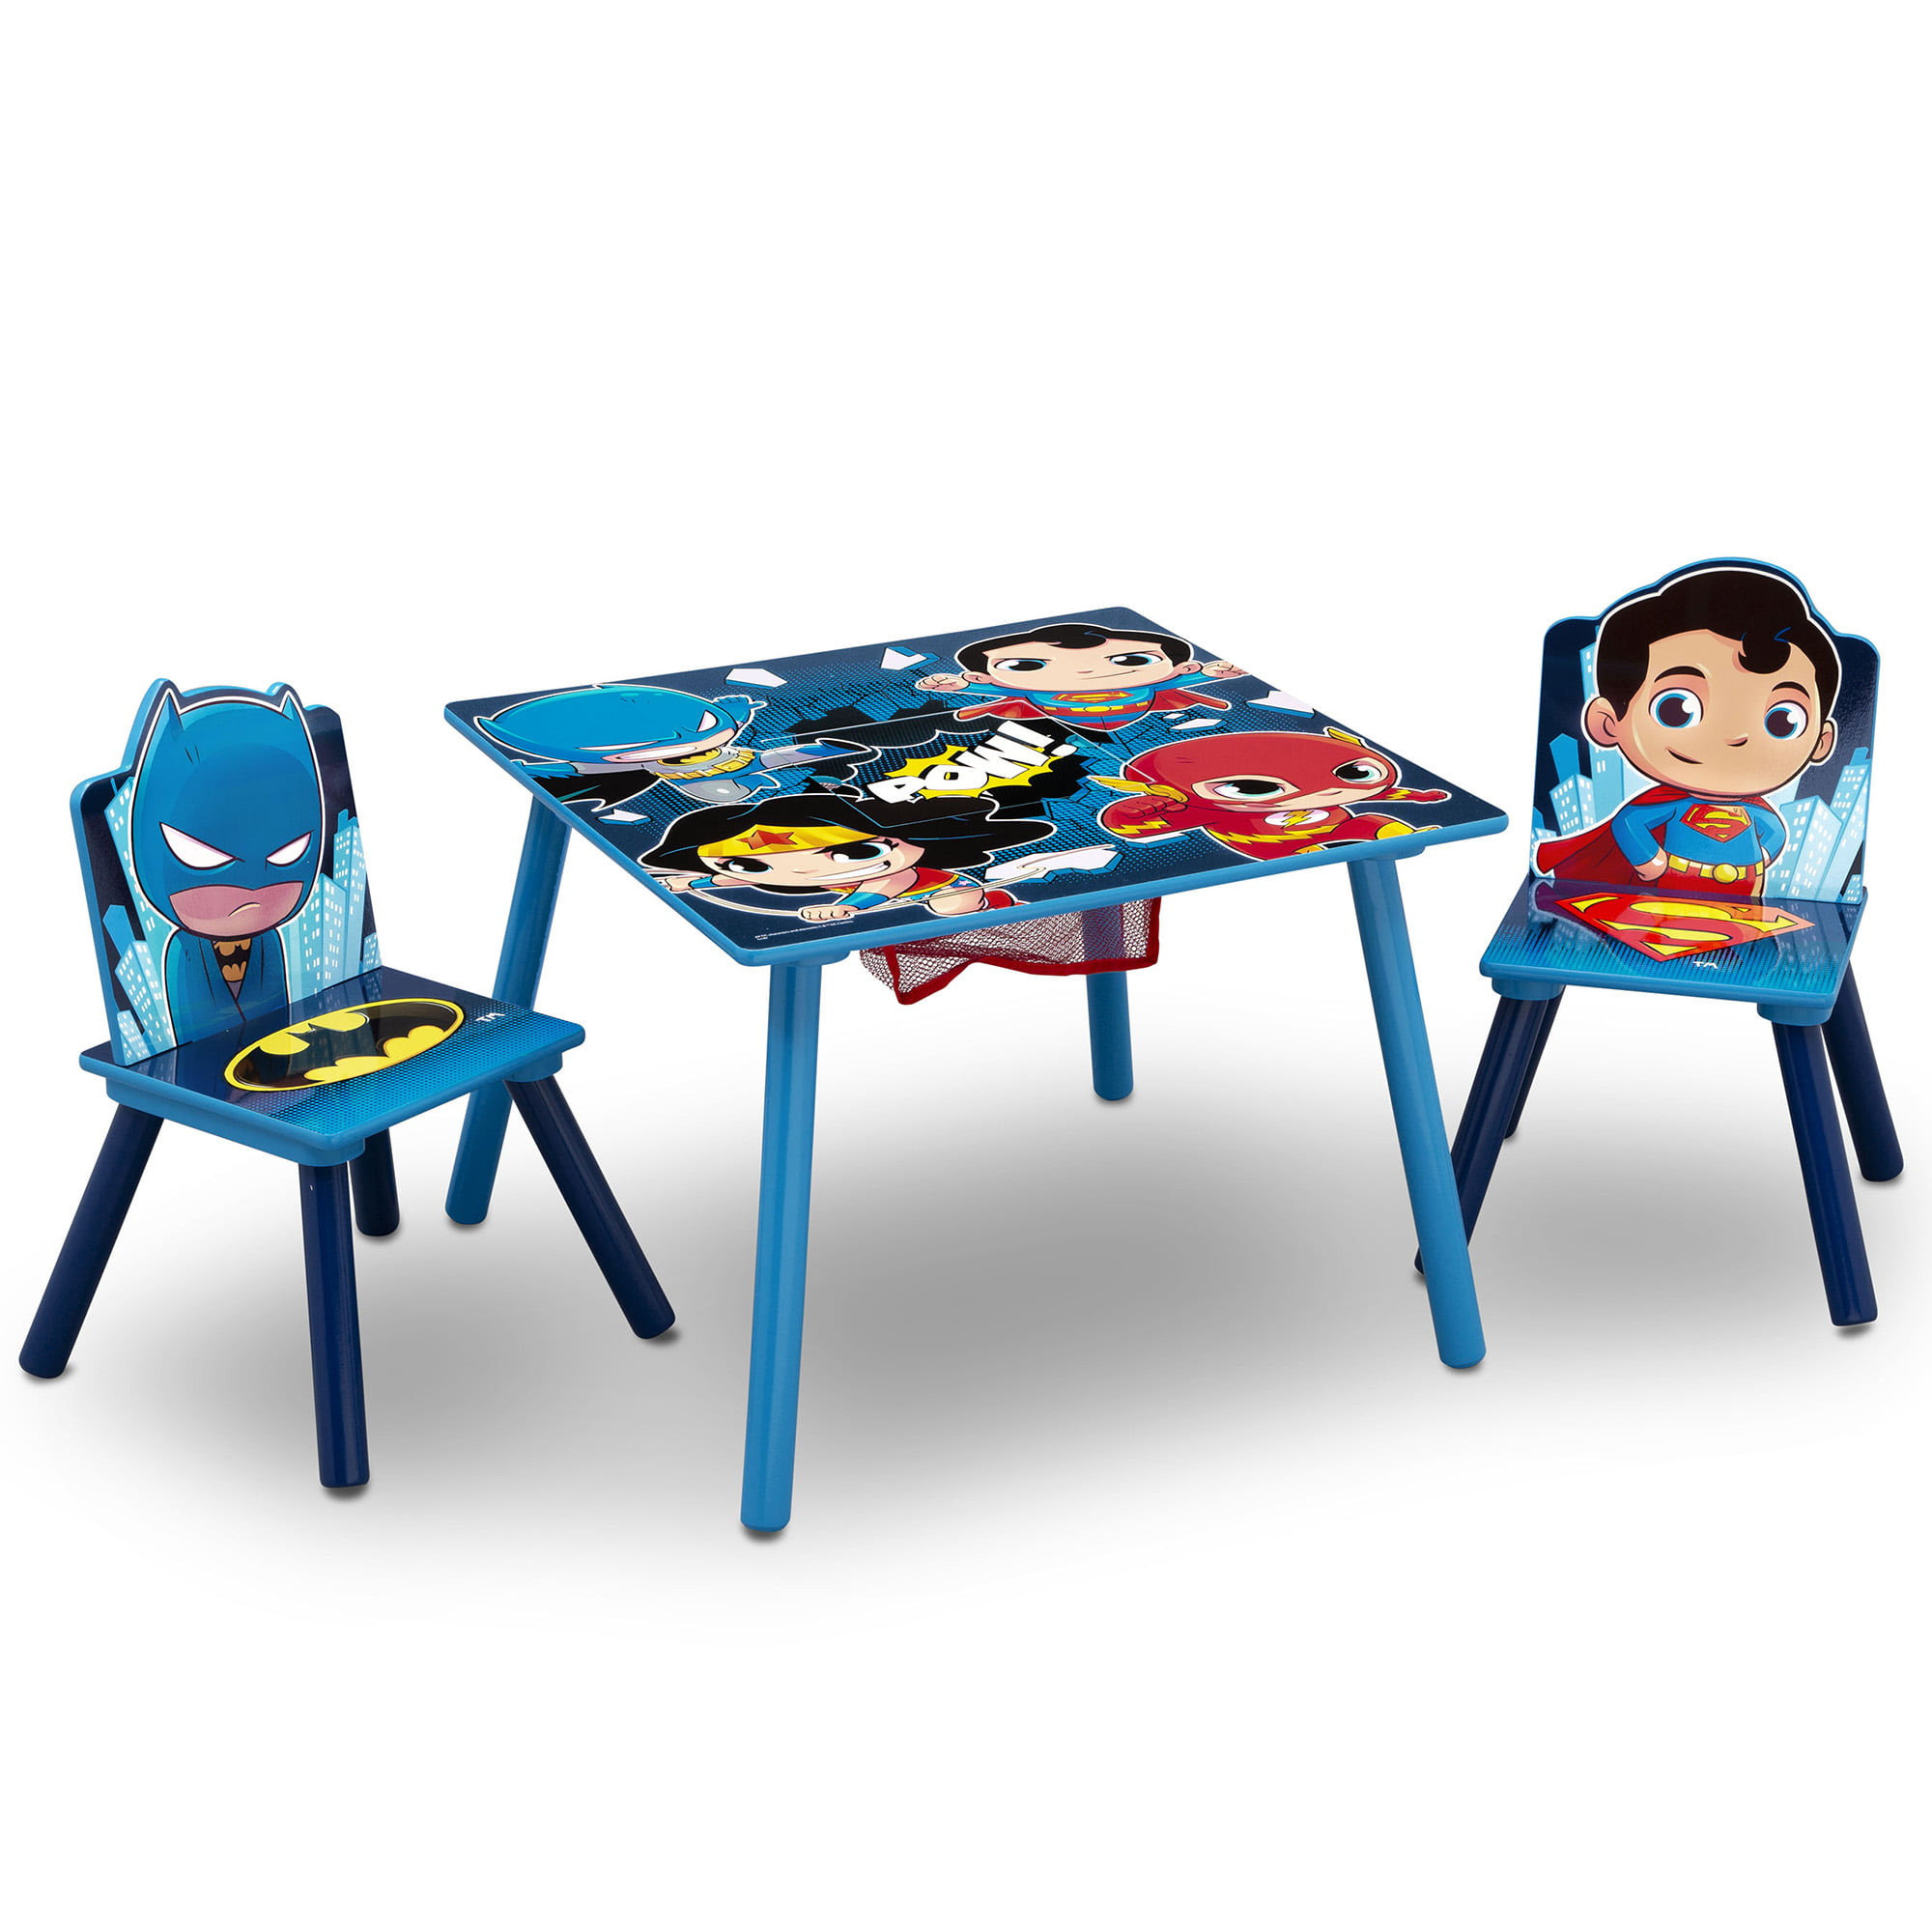 Wondrous Dc Super Friends Batman Superman Wonder Woman The Flash Machost Co Dining Chair Design Ideas Machostcouk